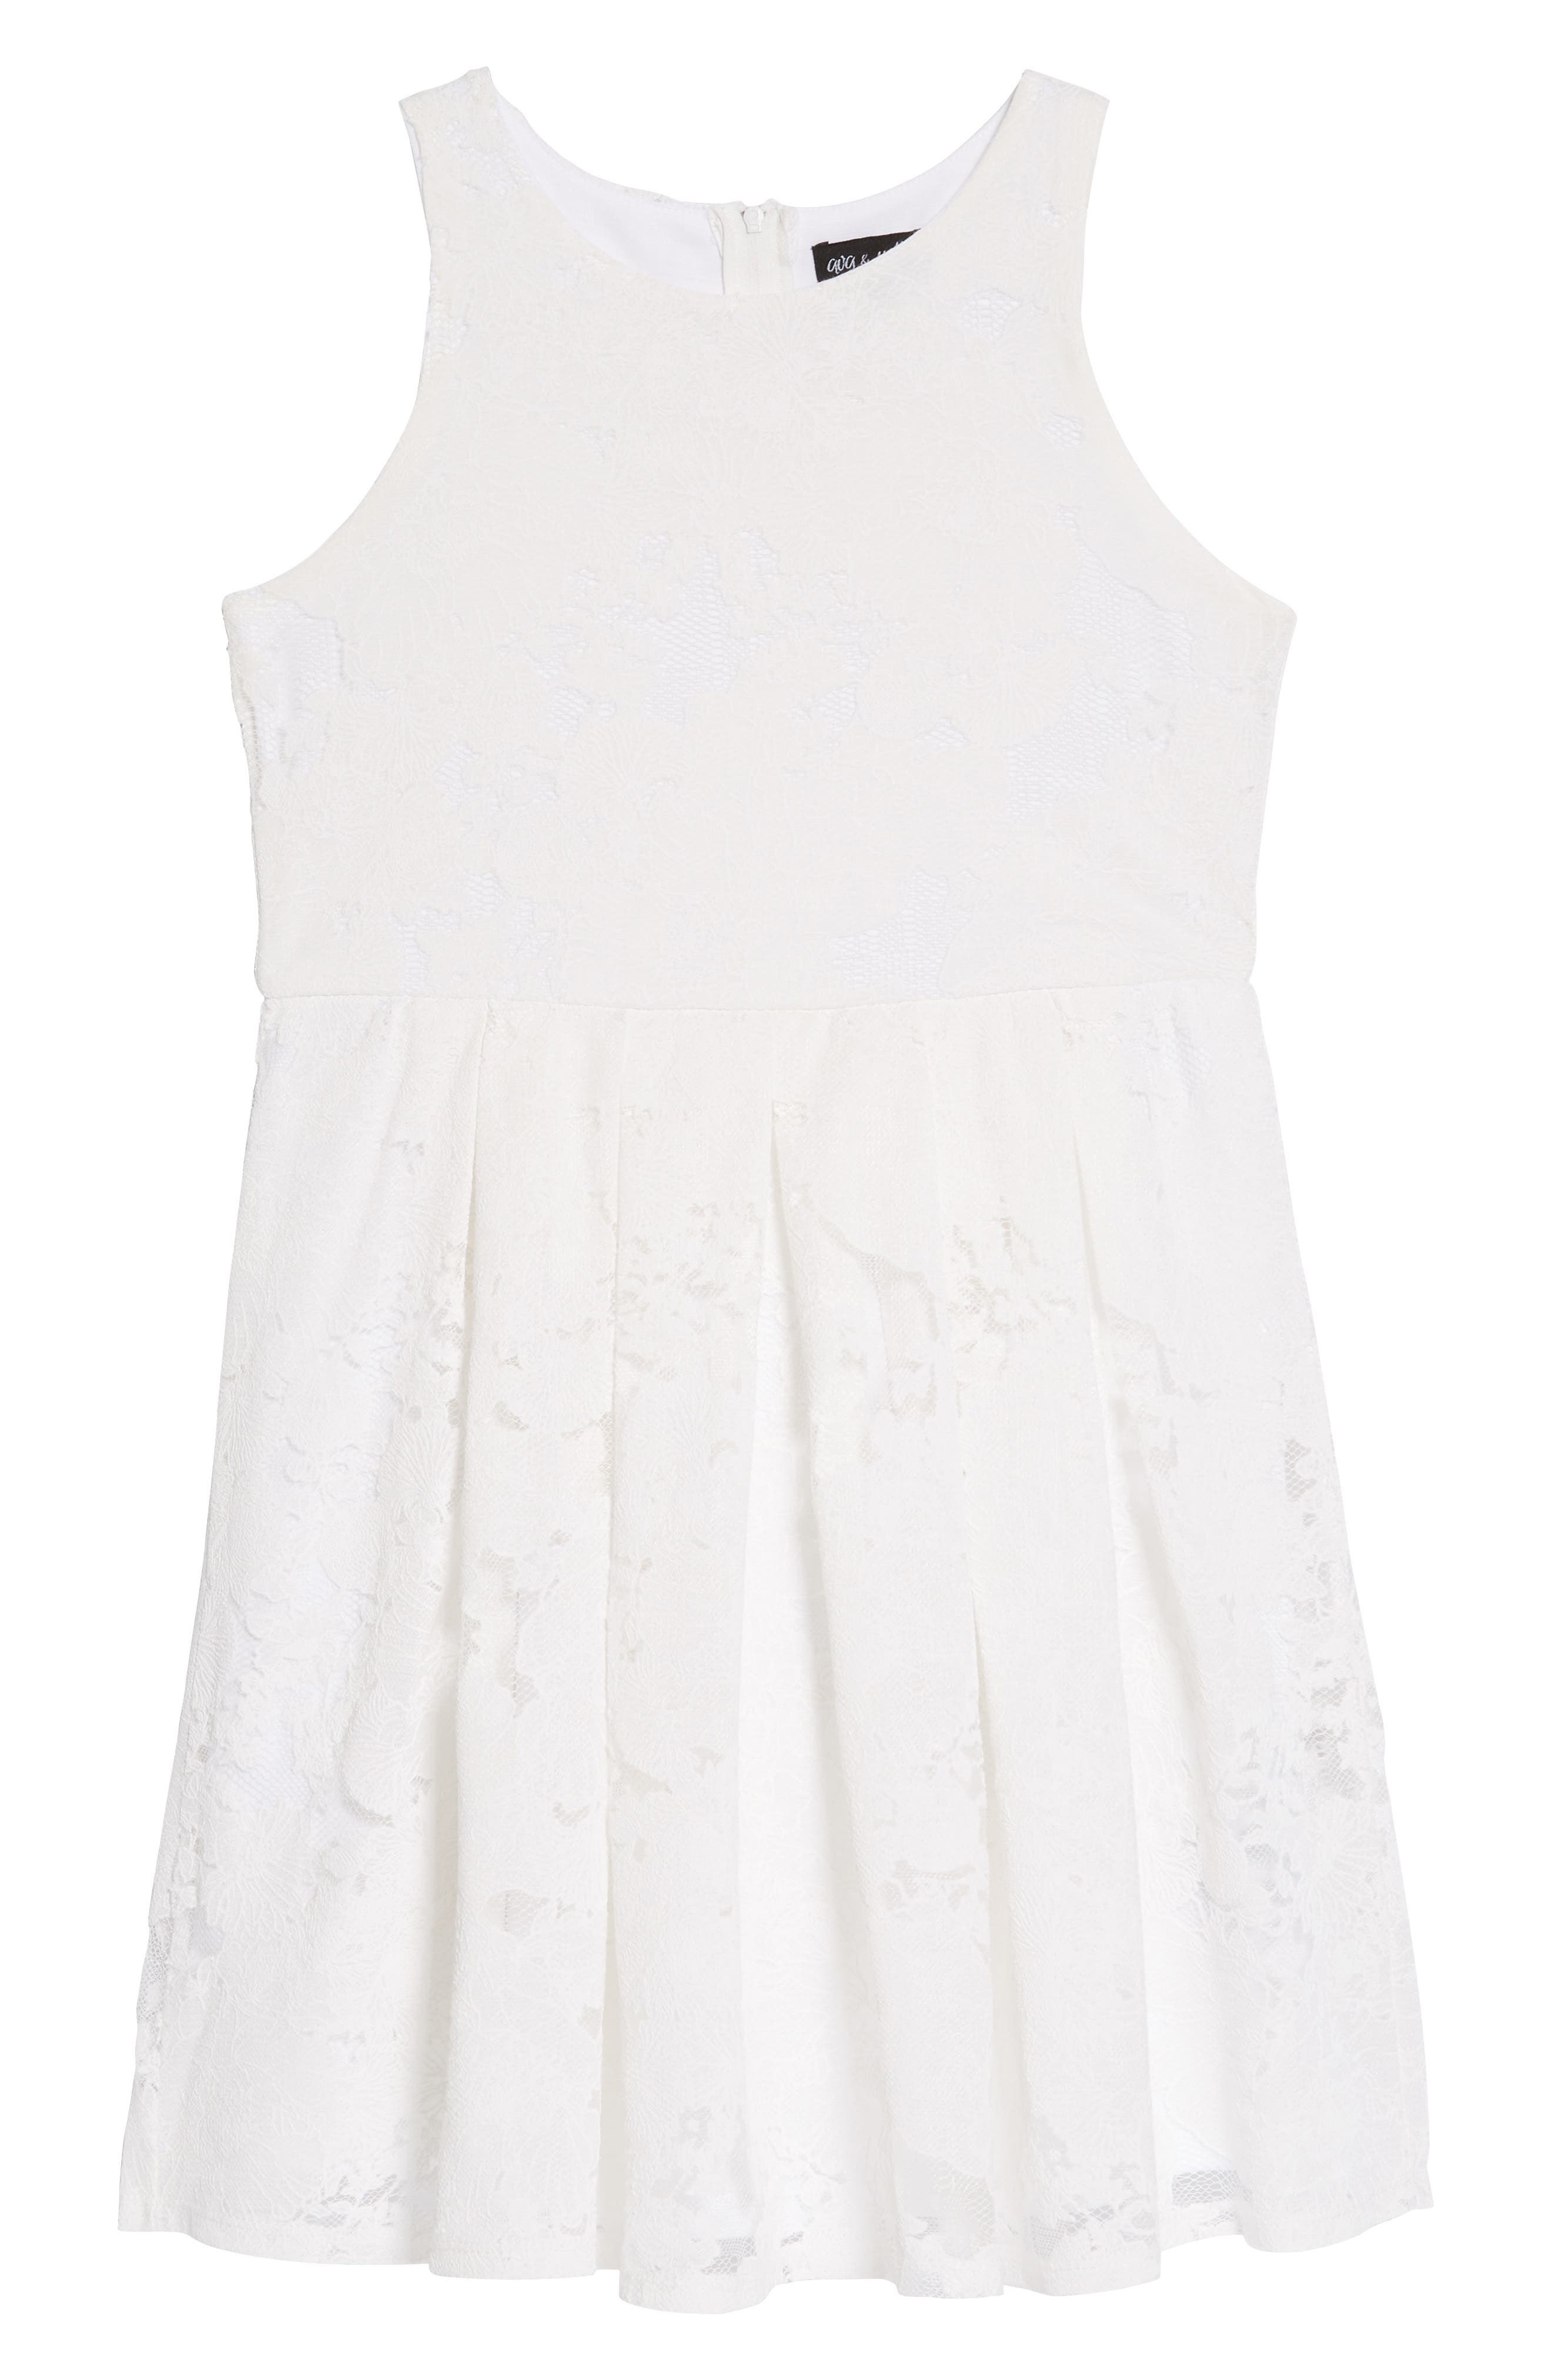 Lace Overlay Skater Dress,                         Main,                         color, White